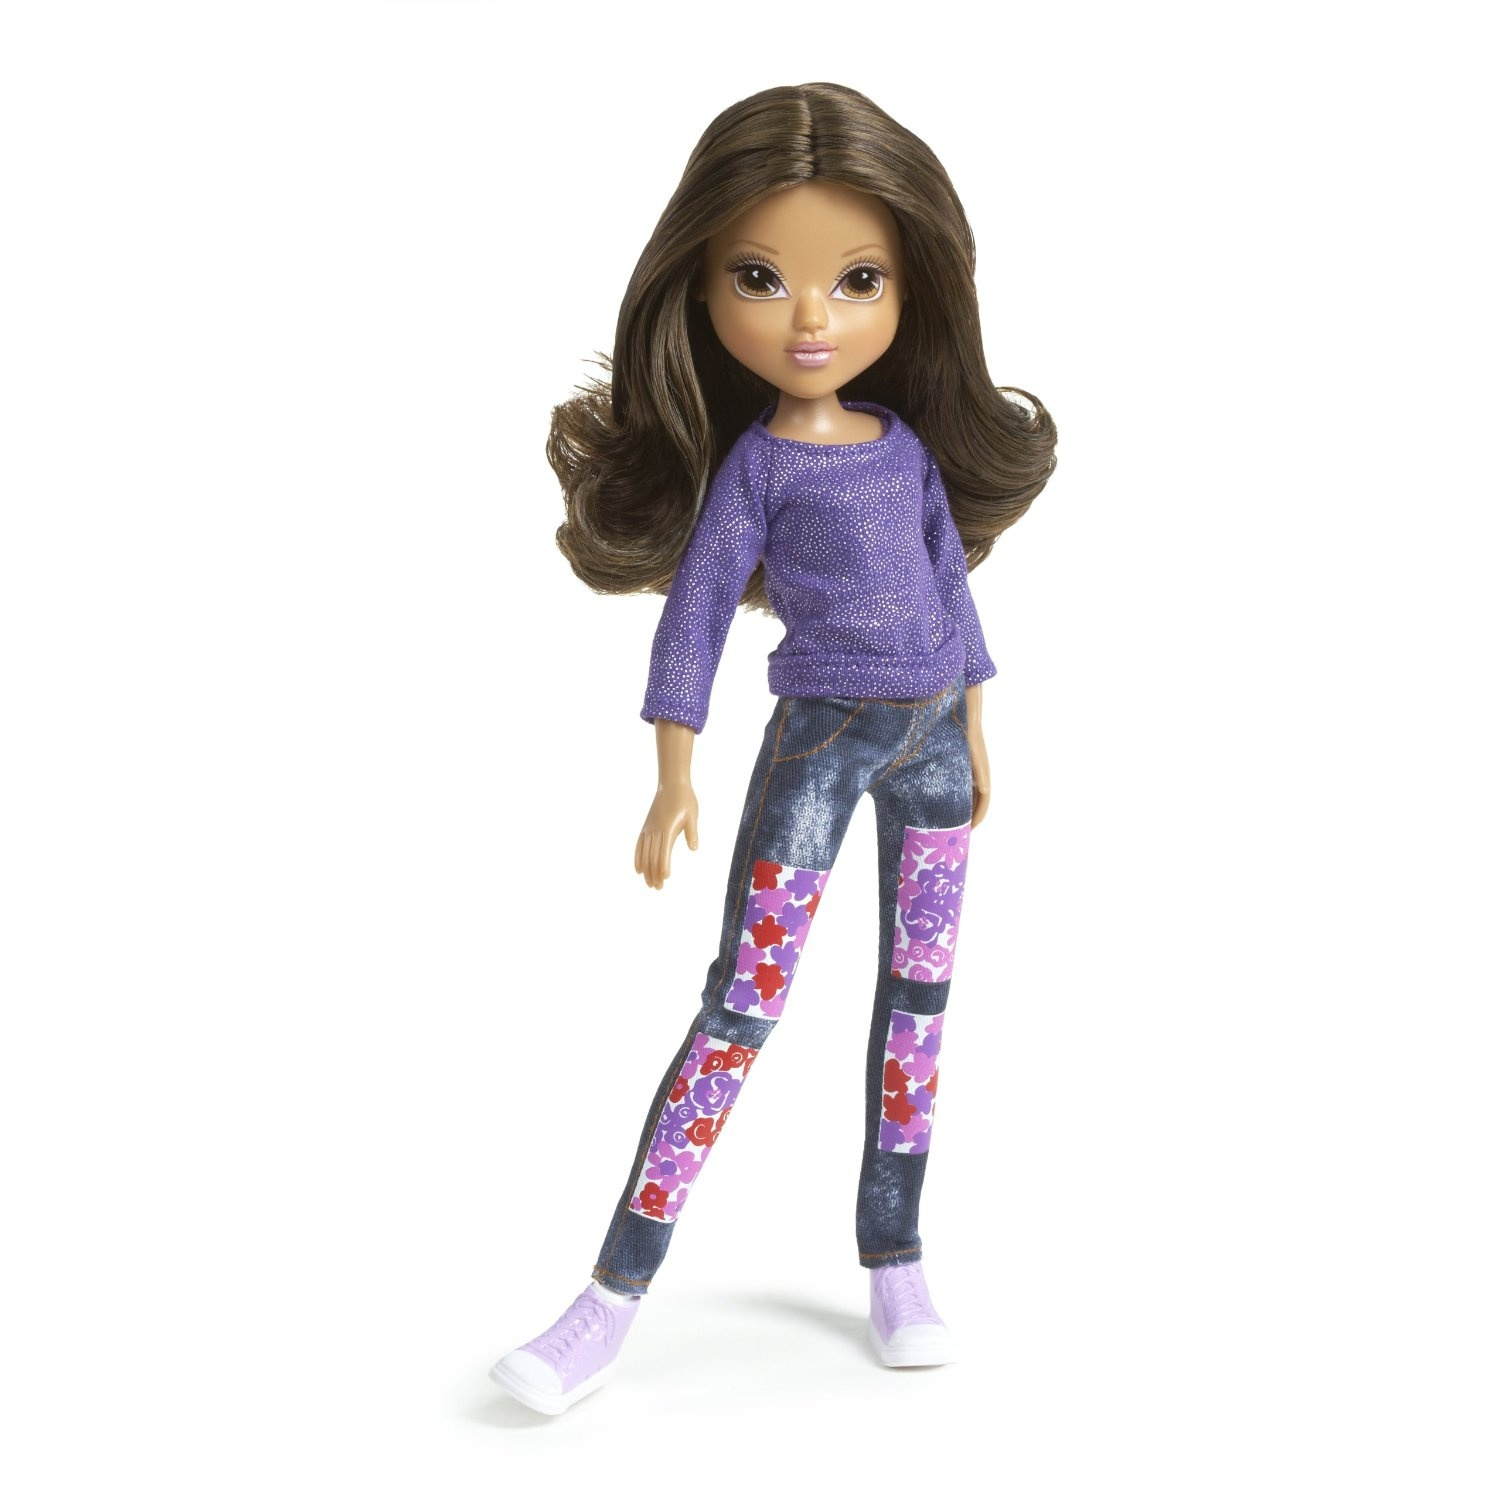 Moxie Girlz Doll Sophina By Moxie Girlz Shop Online For Toys In